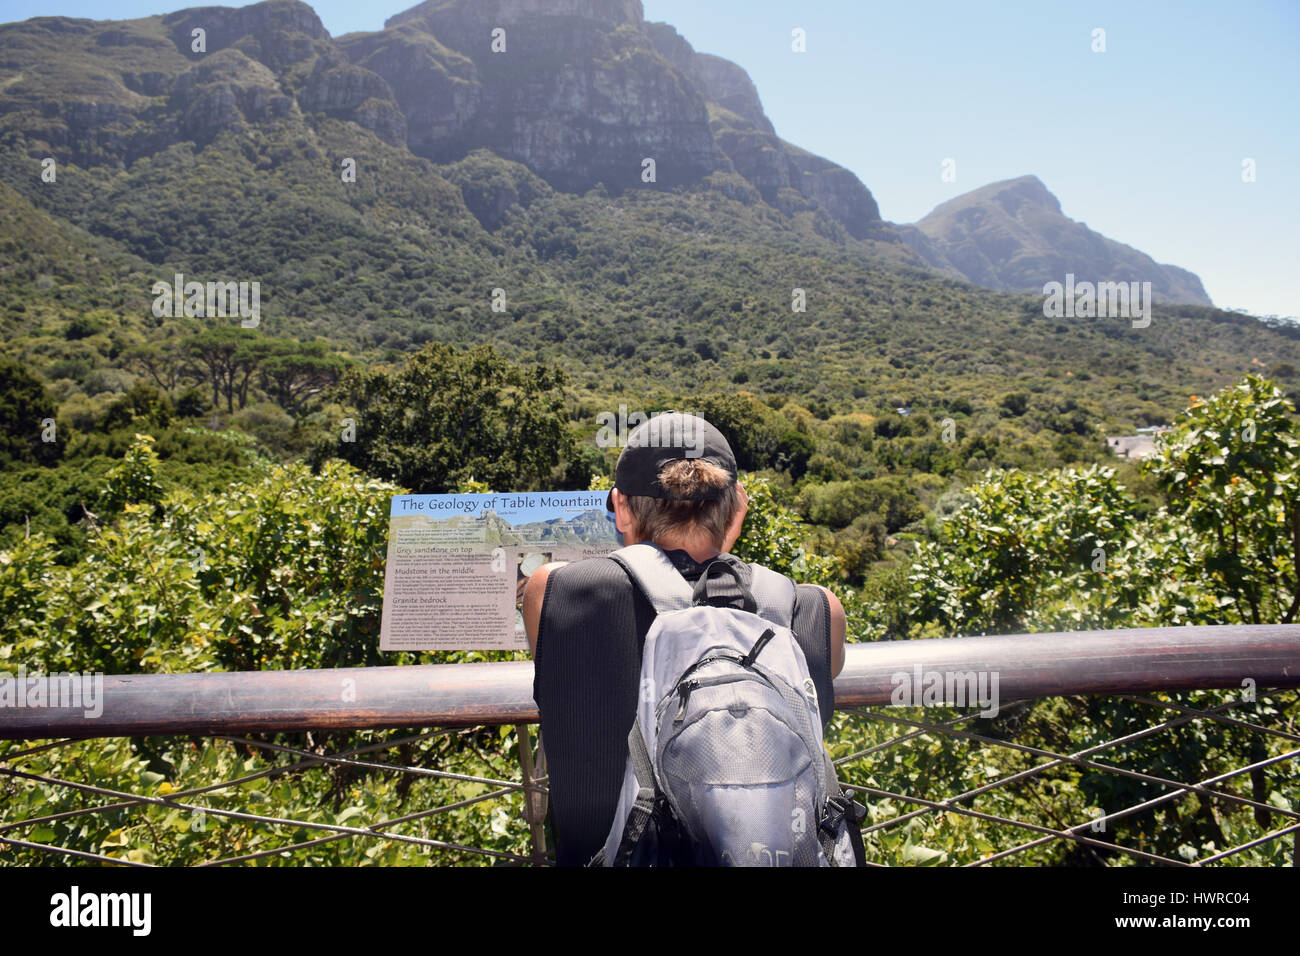 Kirstenbosch botanical gardens, treetop canopy walk, Cape Town, South Africa Stock Photo